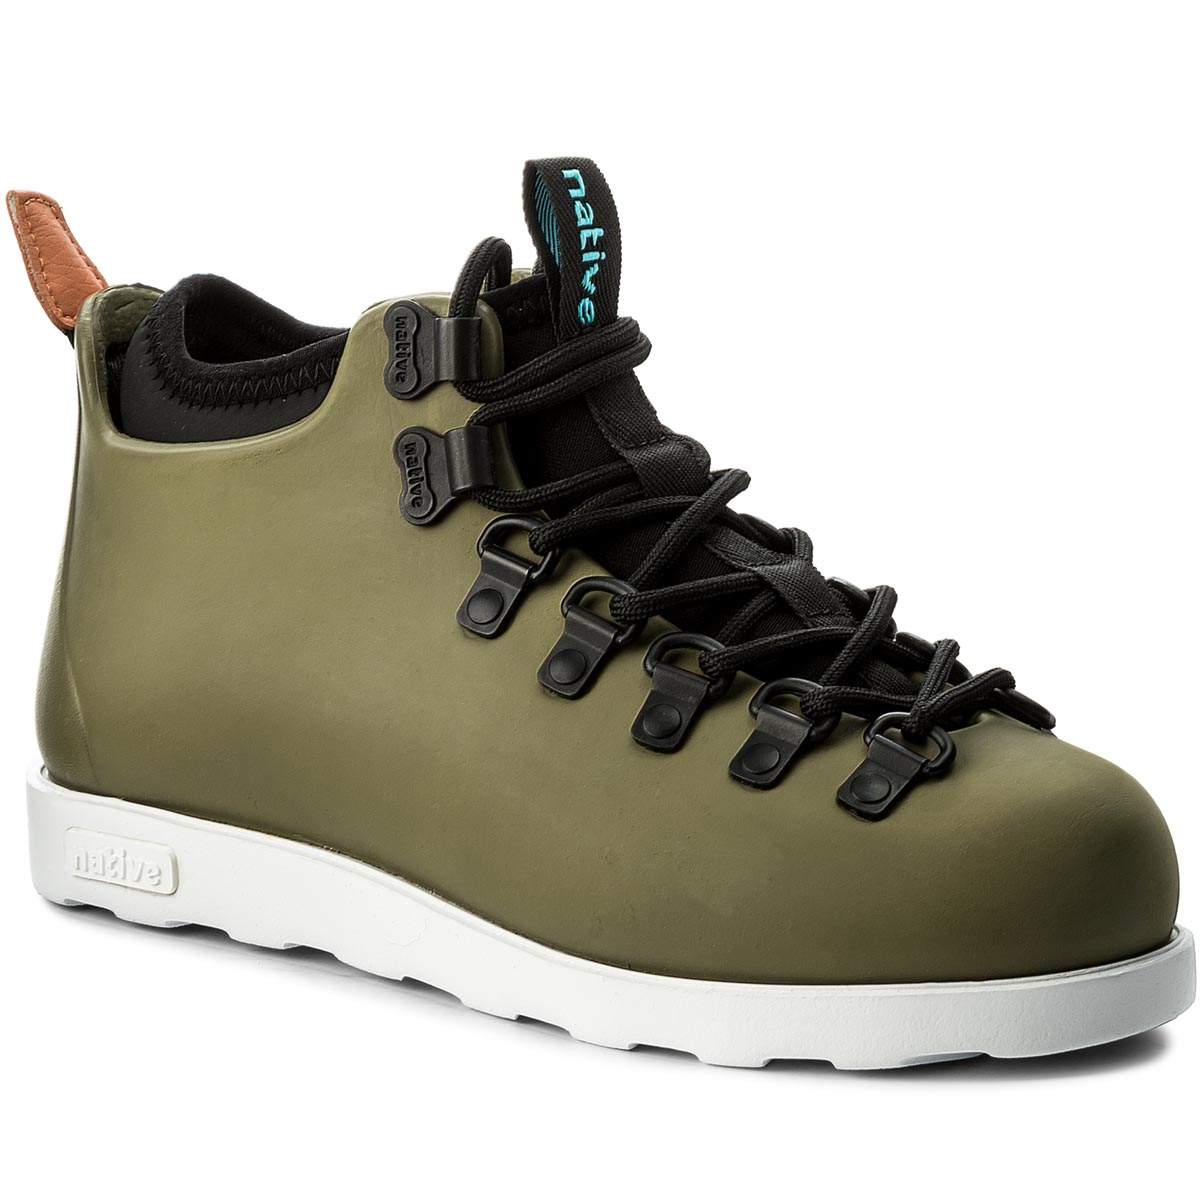 Trapery NATIVE - Fitzsimmons Juice Green/Shell White